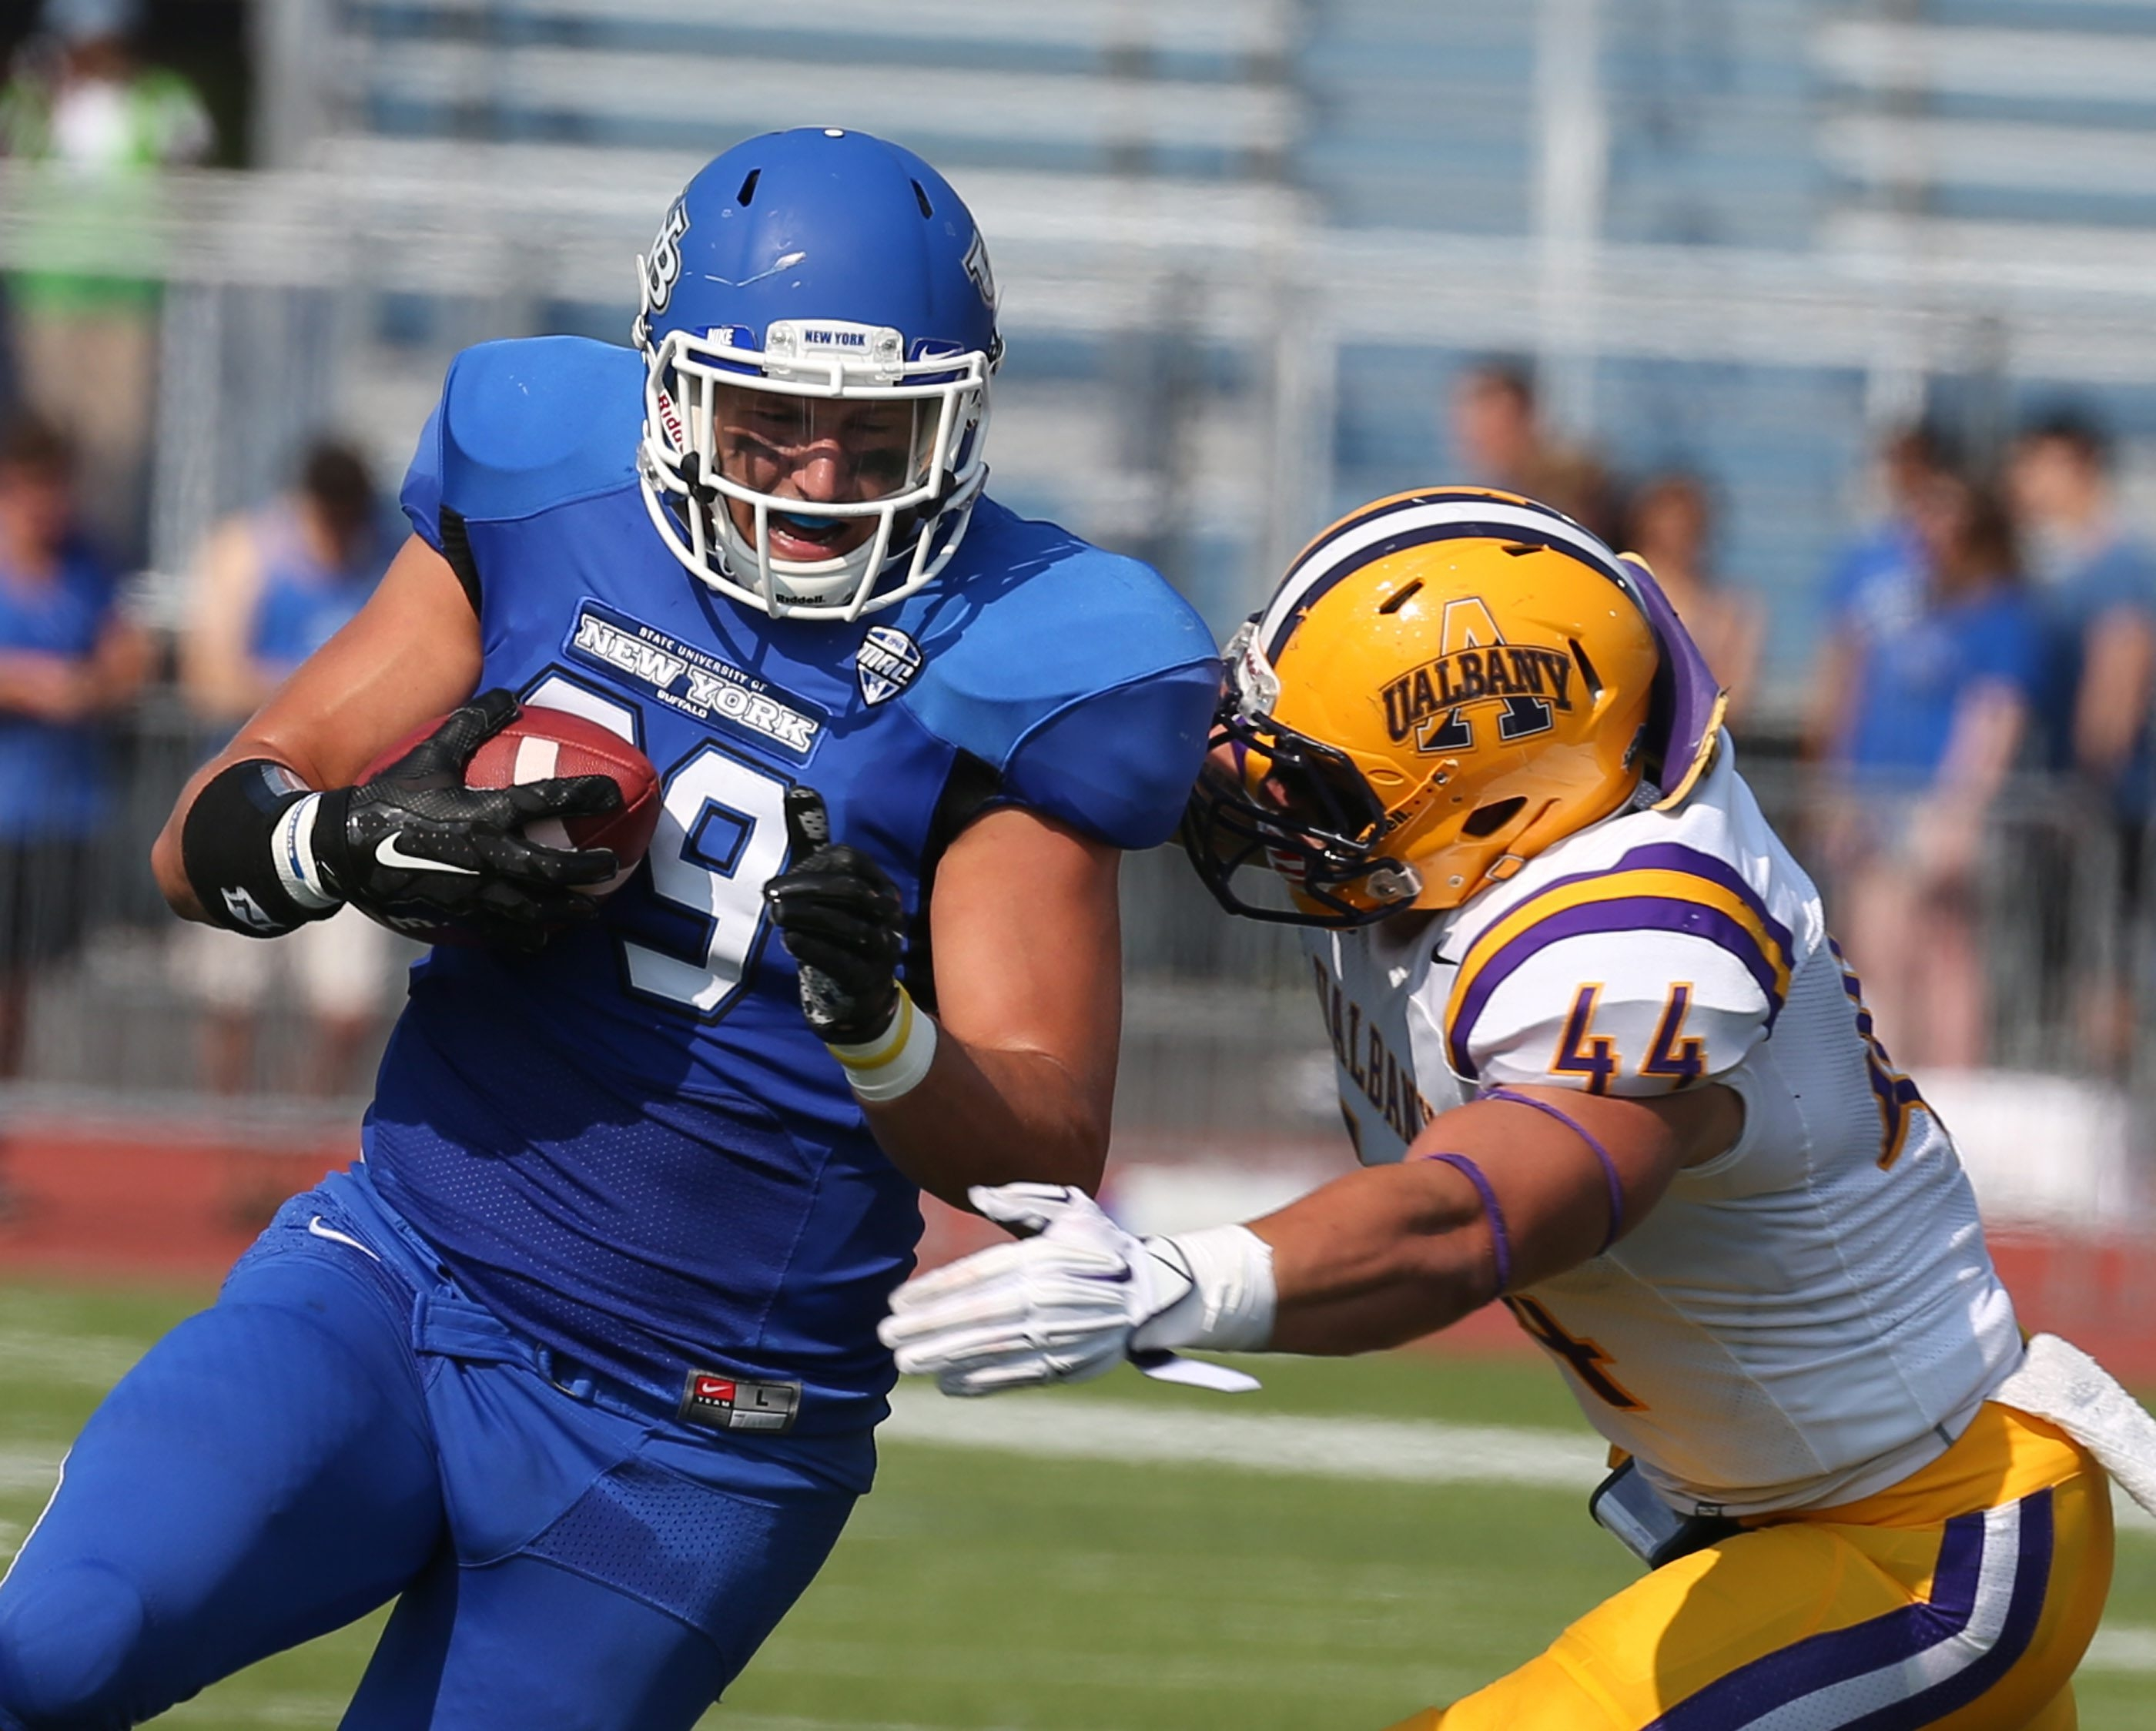 Buffalo Bulls tight end Matt Weiser (89) beats Albany Great Danes linebacker Colin Cooper (44) for a first down in the first quarter at Universitiy at Buffalo Stadium in Amherst,NY on Saturday, Sept. 5, 2015.  (James P. McCoy/ Buffalo News)